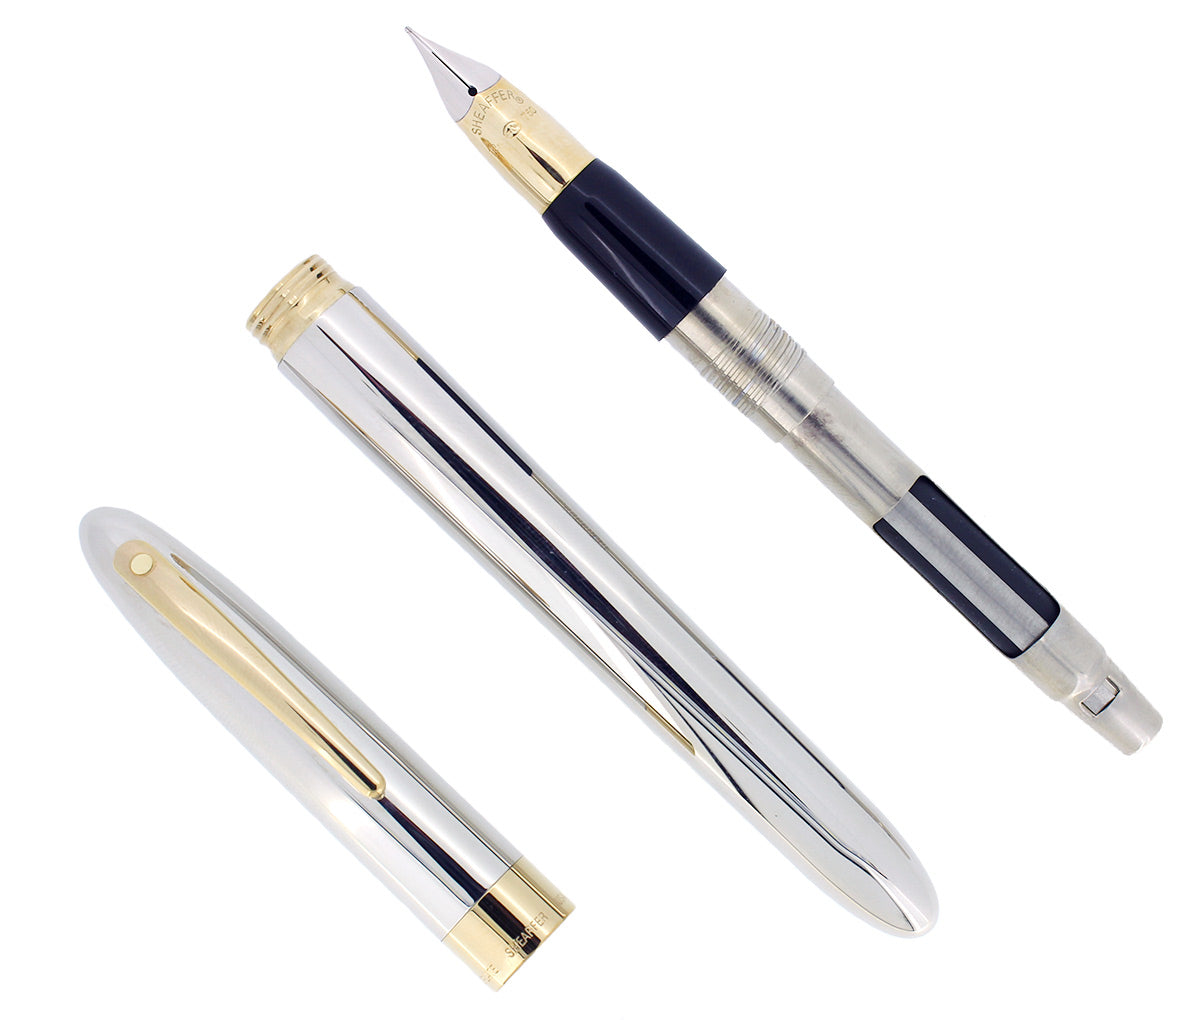 C1993 SHEAFFER CREST PALLADIUM 23K GOLD TRIM 18K M NIB FOUNTAIN PEN NEVER INKED OFFERED BY ANTIQUE DIGGER